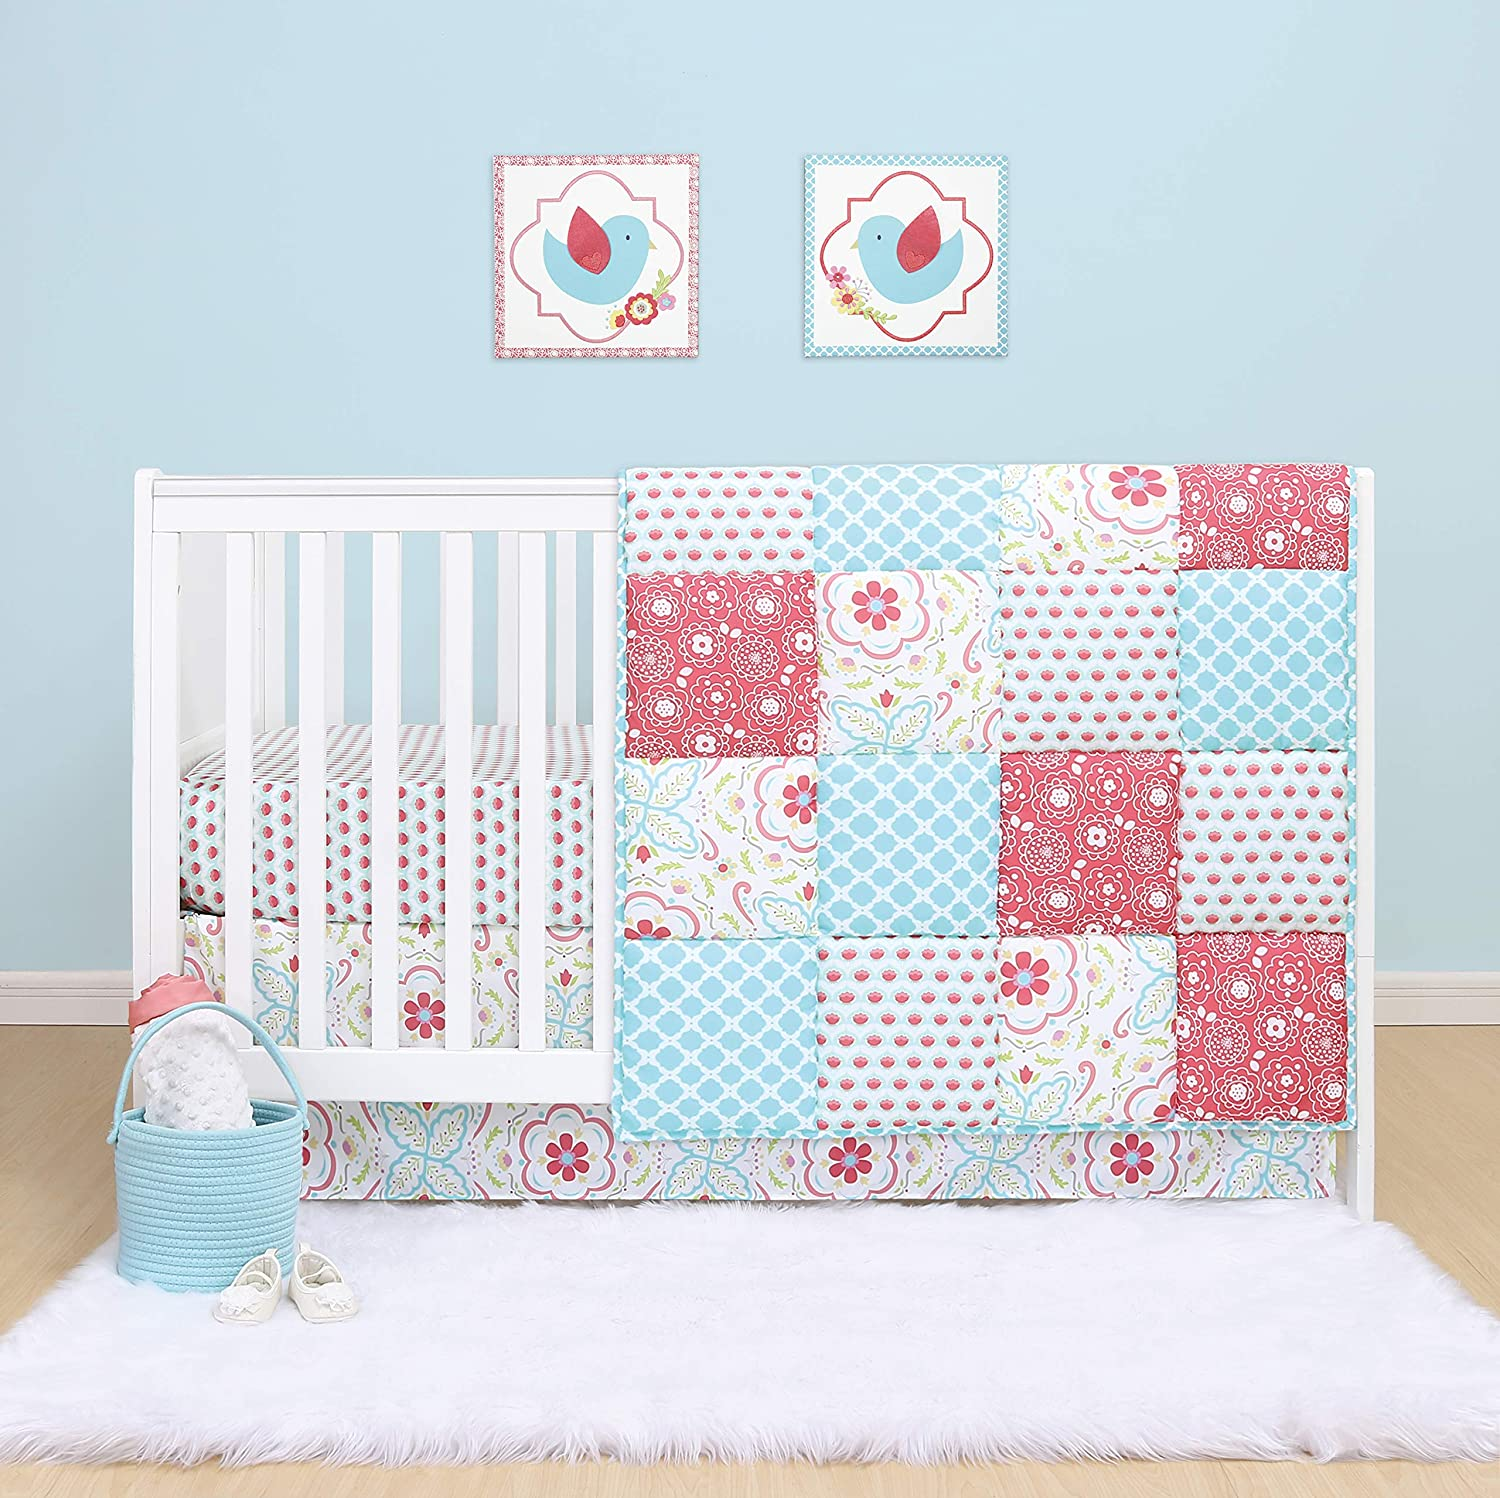 The Peanutshell Mila Crib Bedding Set for Baby Girls | 3 Piece Nursery Set | Baby Quilt, Crib Sheet, and Dust Ruffle